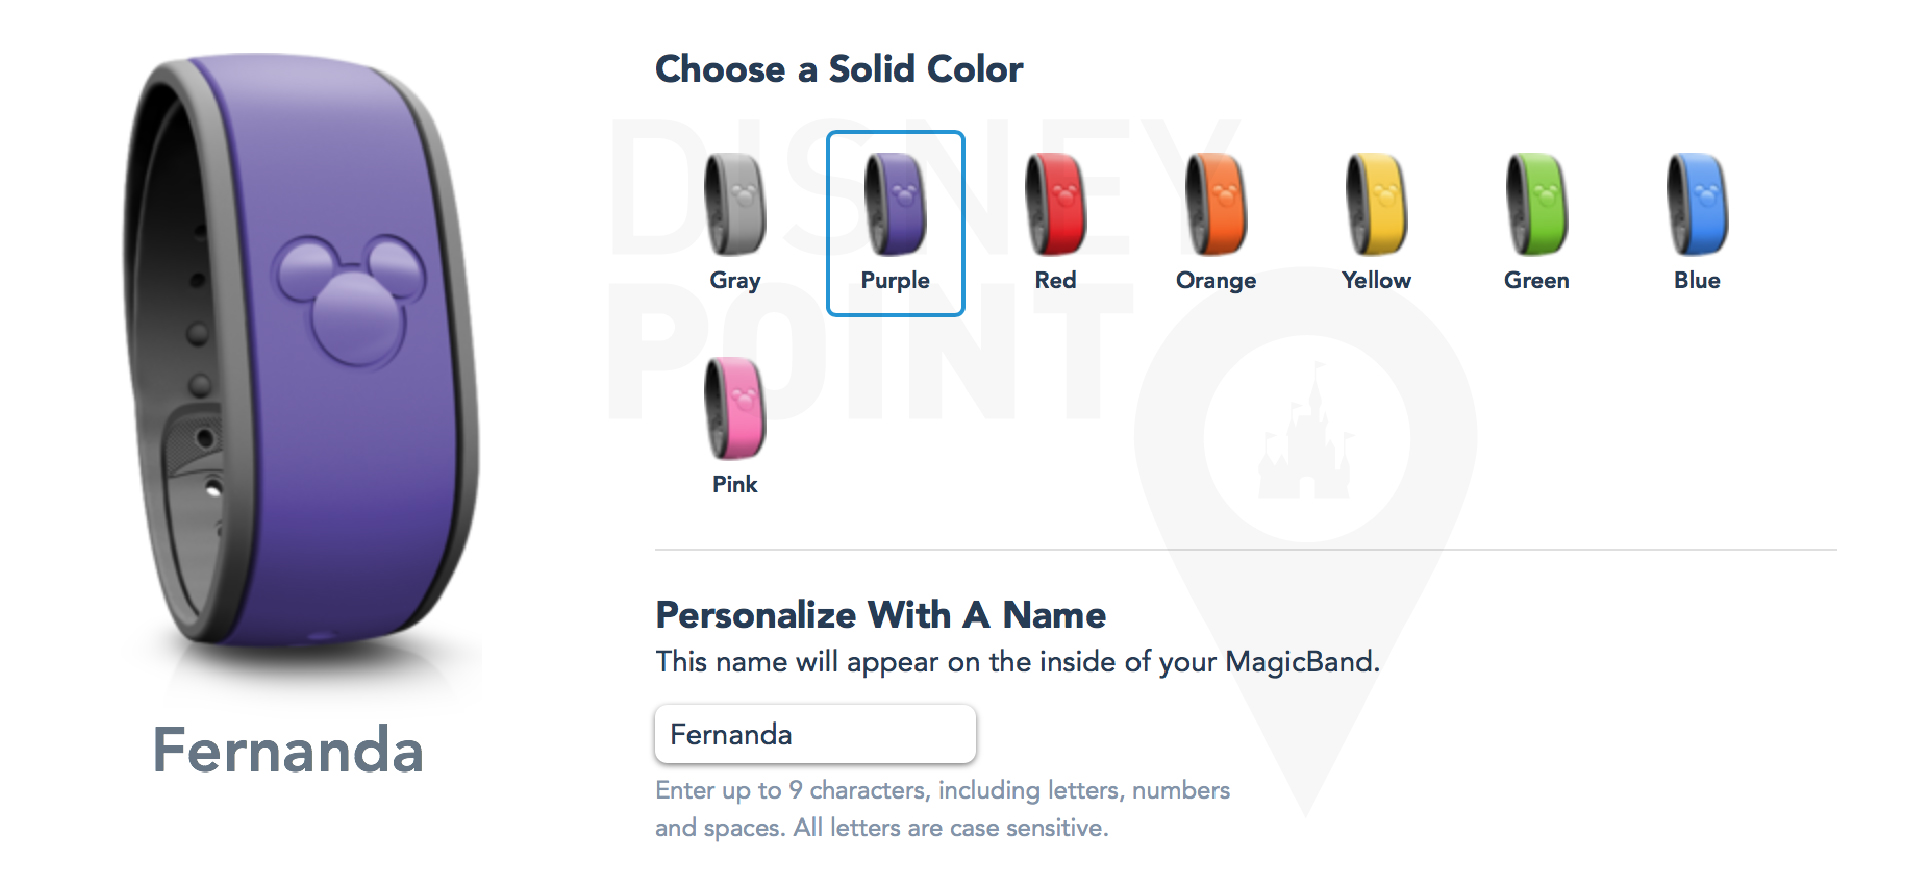 disney-point-personalizar-magicband-4